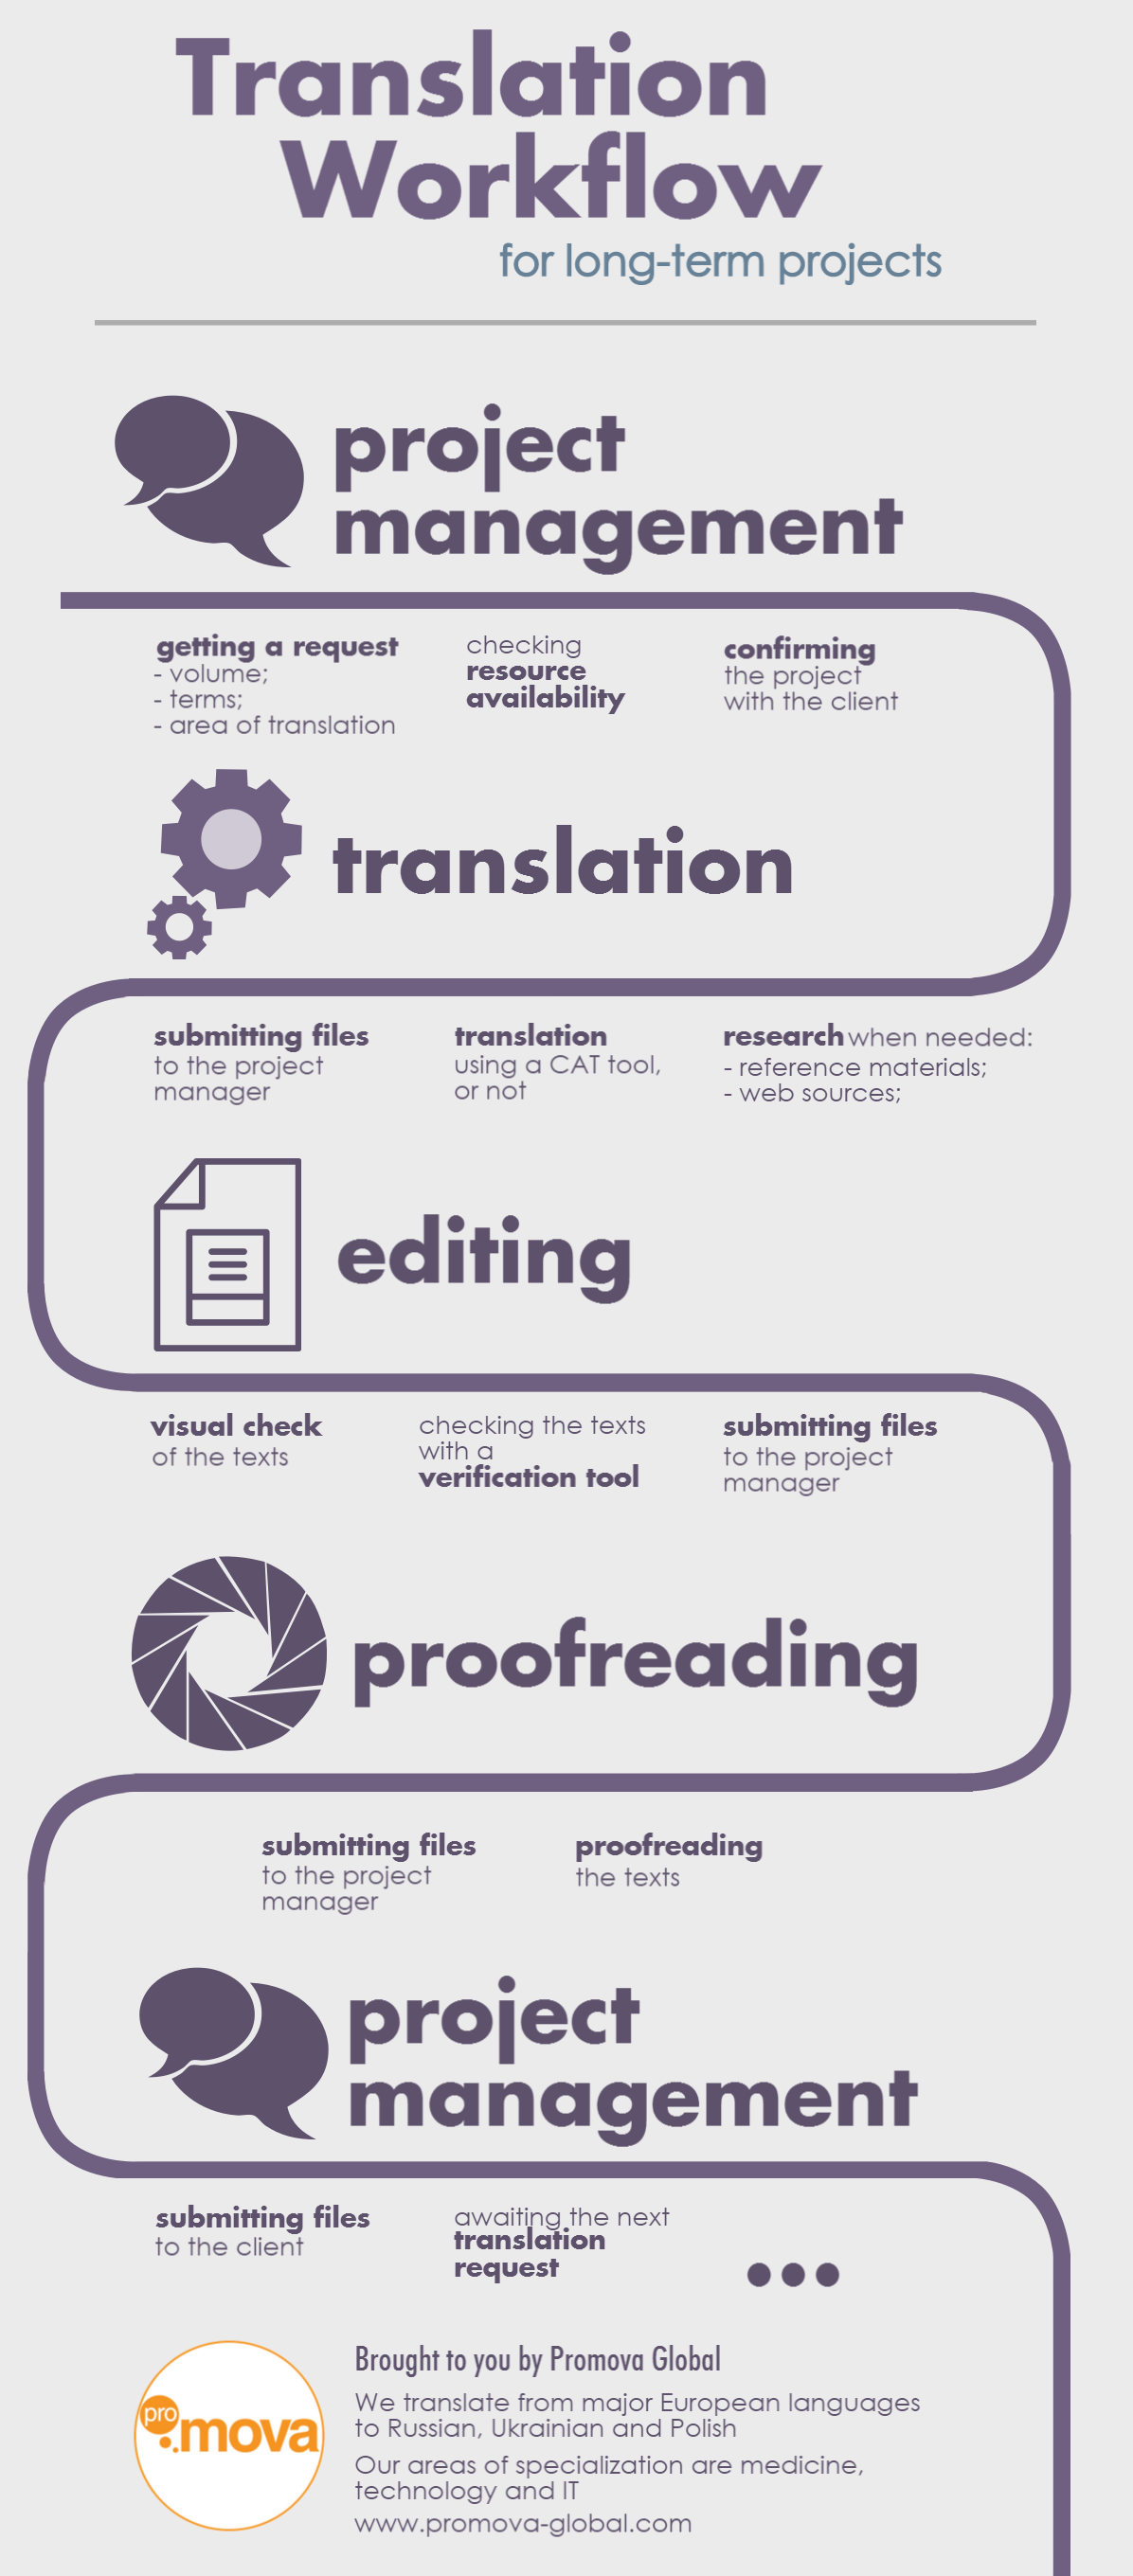 Translation Workflow